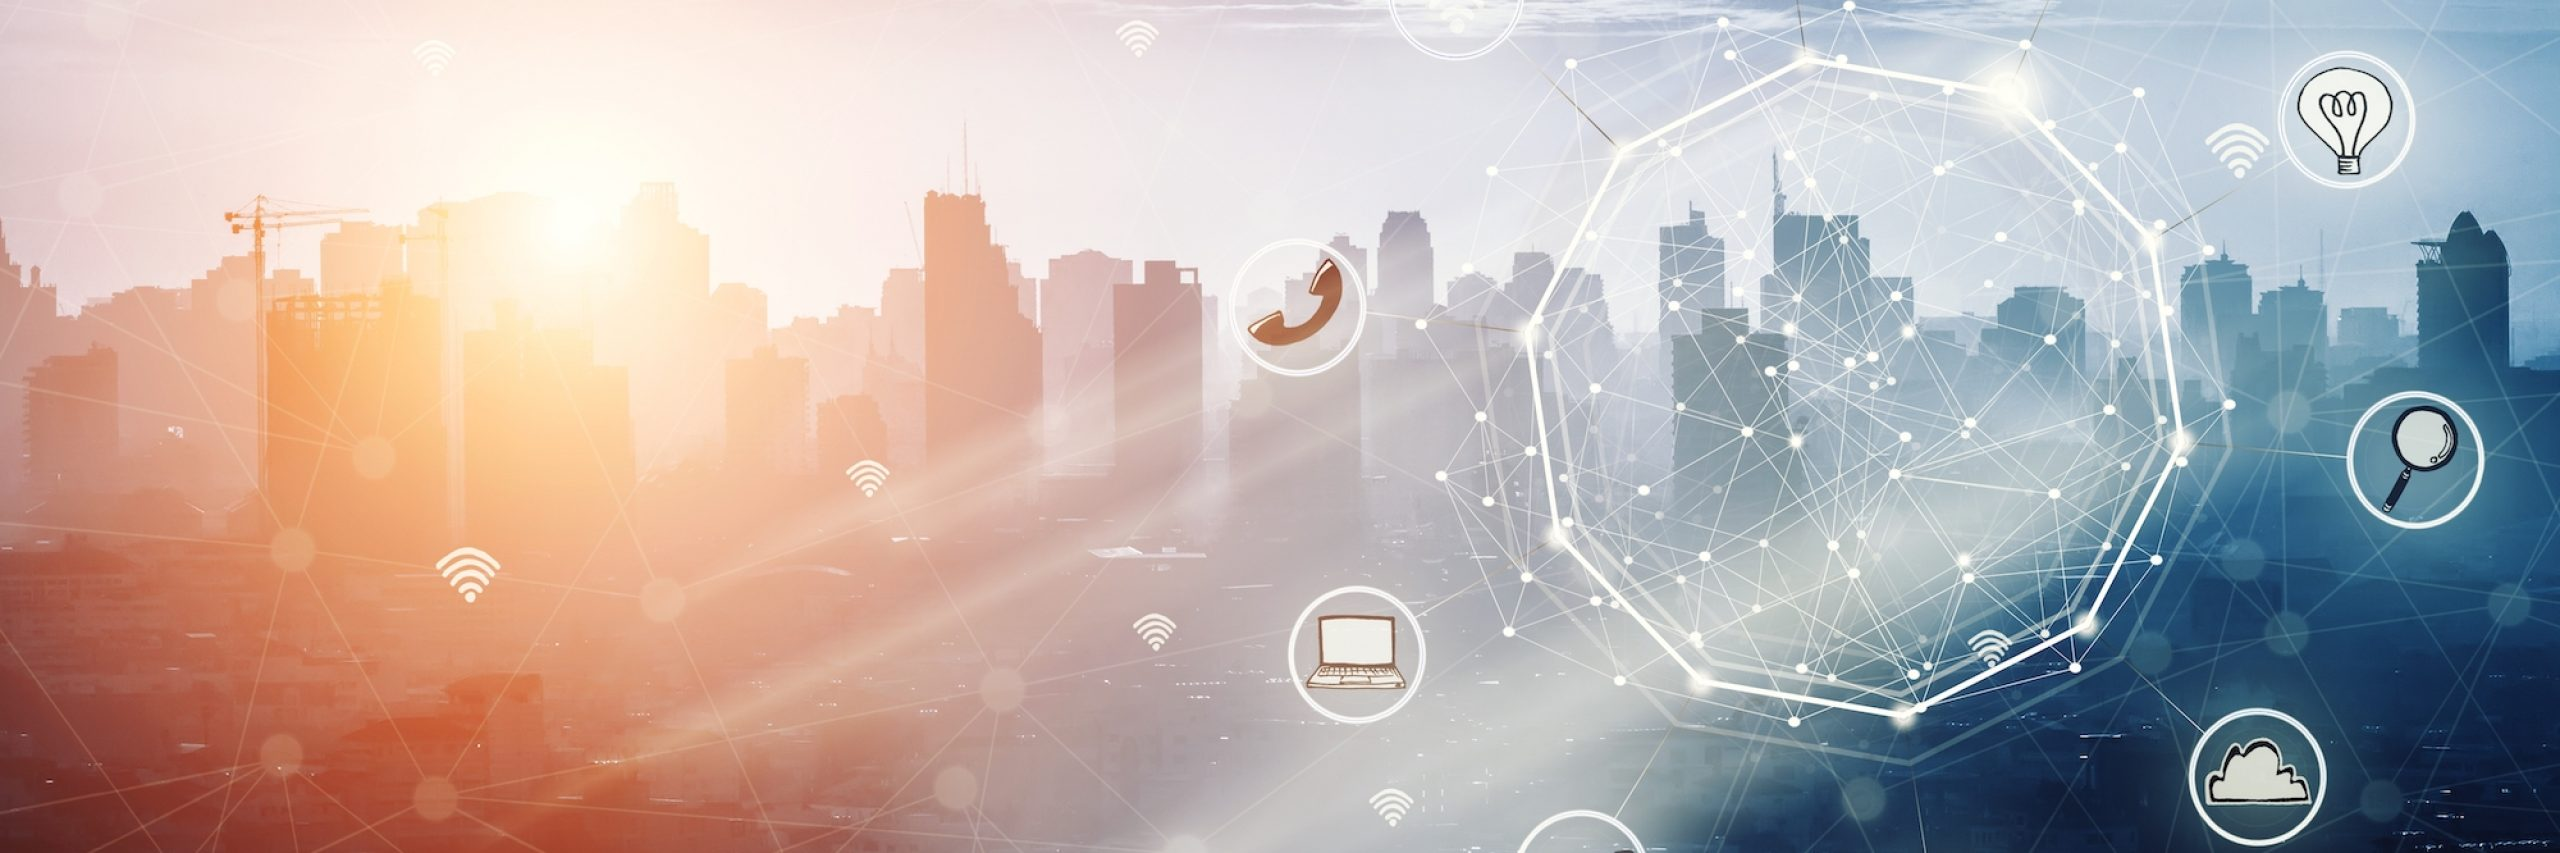 Smart city and wireless communication network, abstract image visual, E-commerce smart connection business. internet of things .